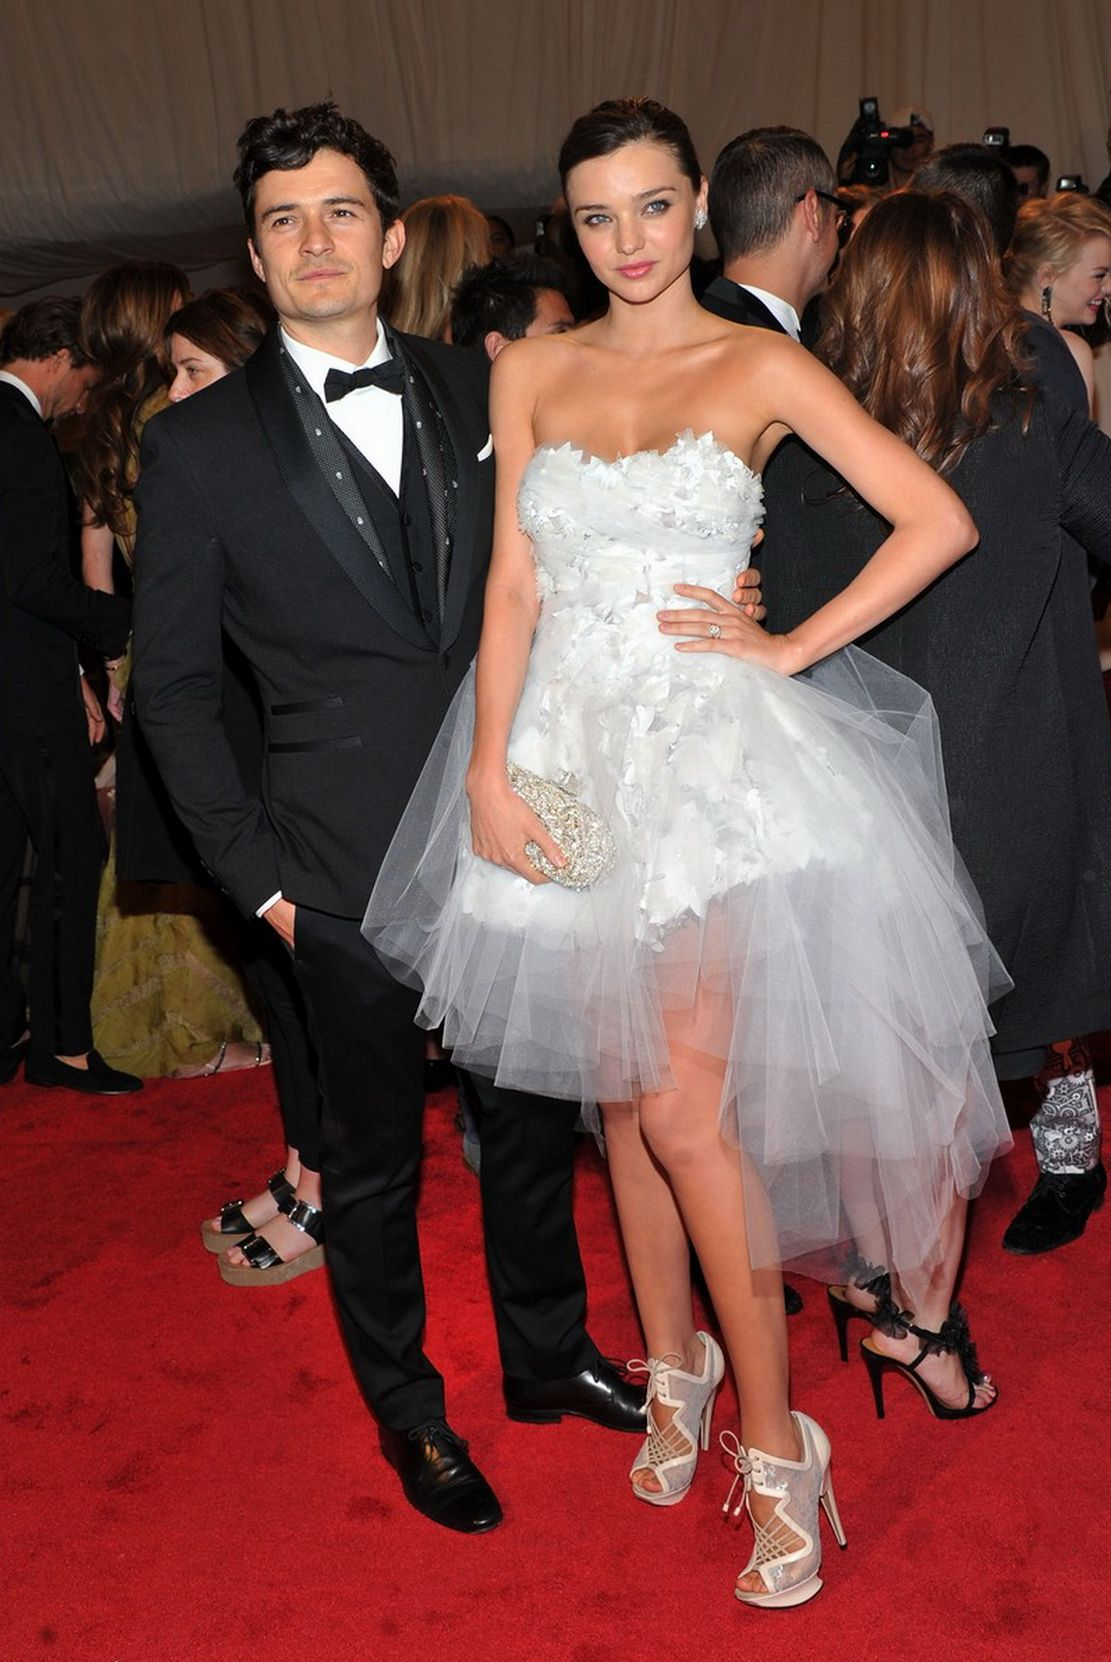 Miranda Kerr Orlando Bloom At The Met Gala This Would Have Been A Great Wedding Dress